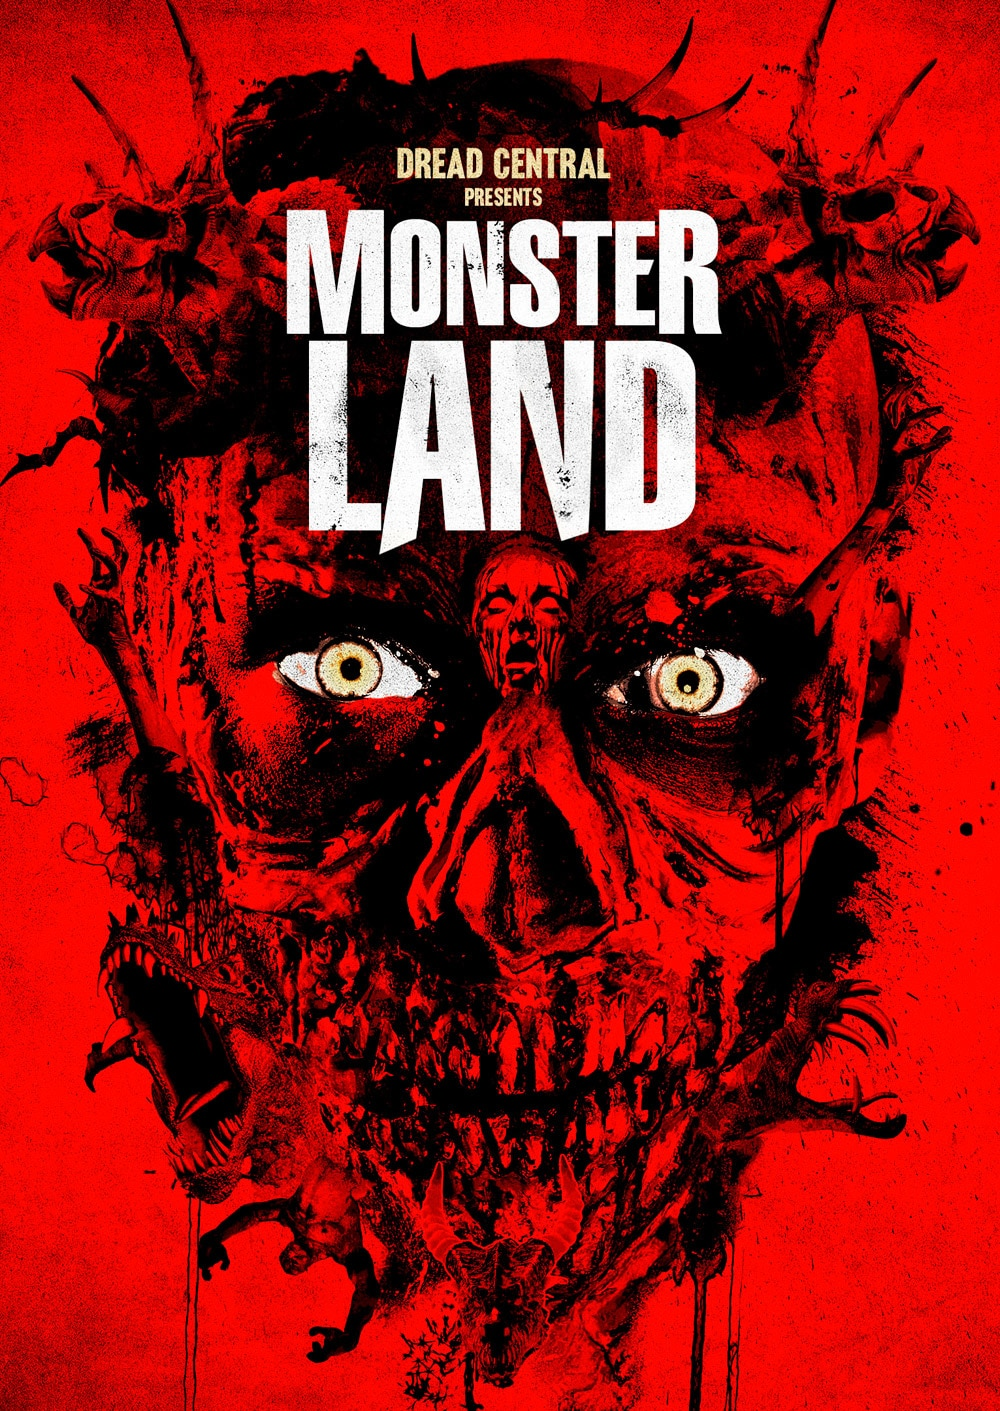 monsterland - Dread Central Presents Monsterland! Coming This June!